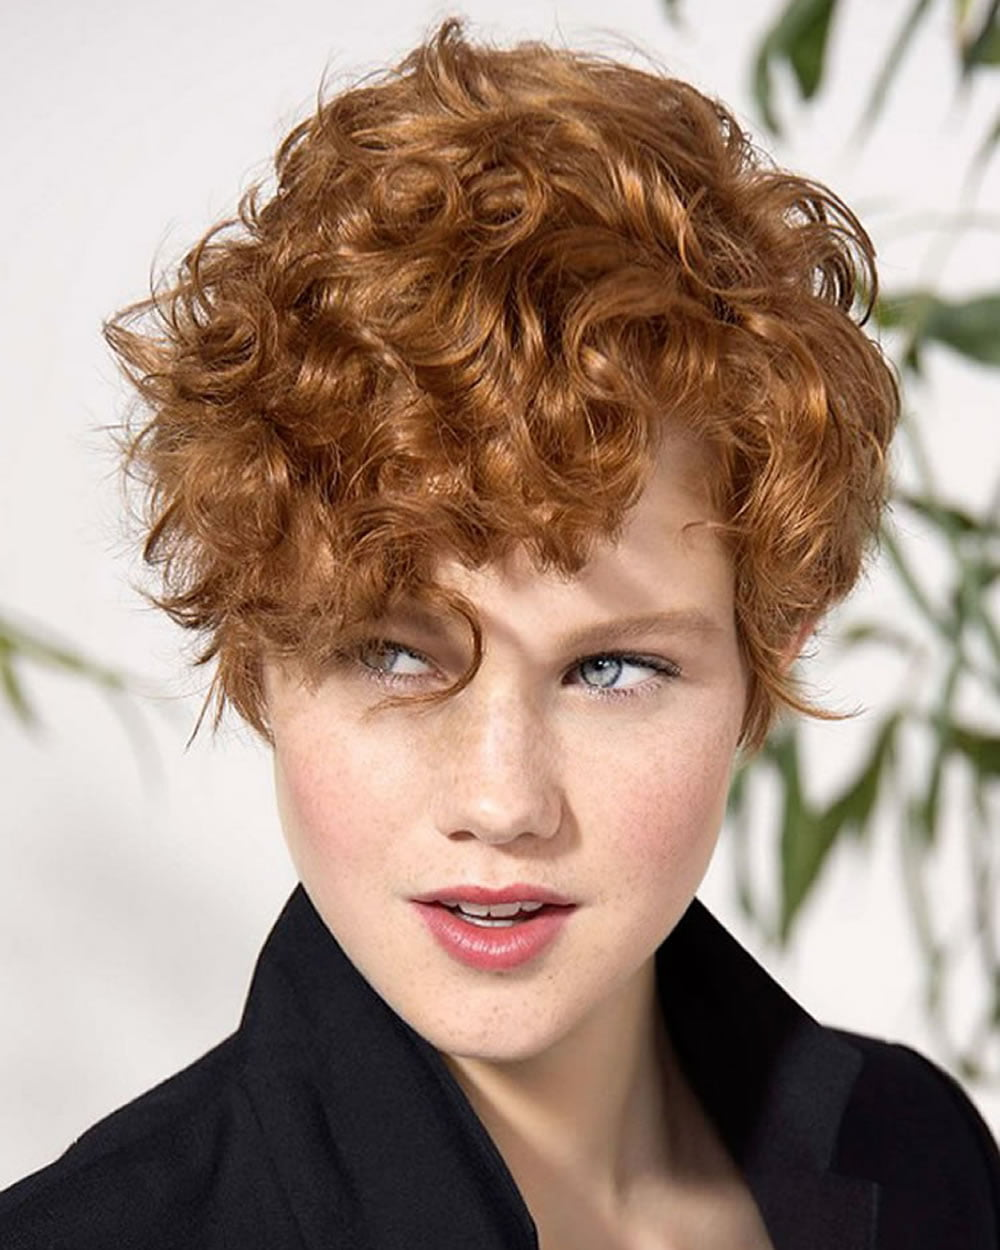 Curly Short Haircuts & Bob + Pixie Hair Compilation - Page ...